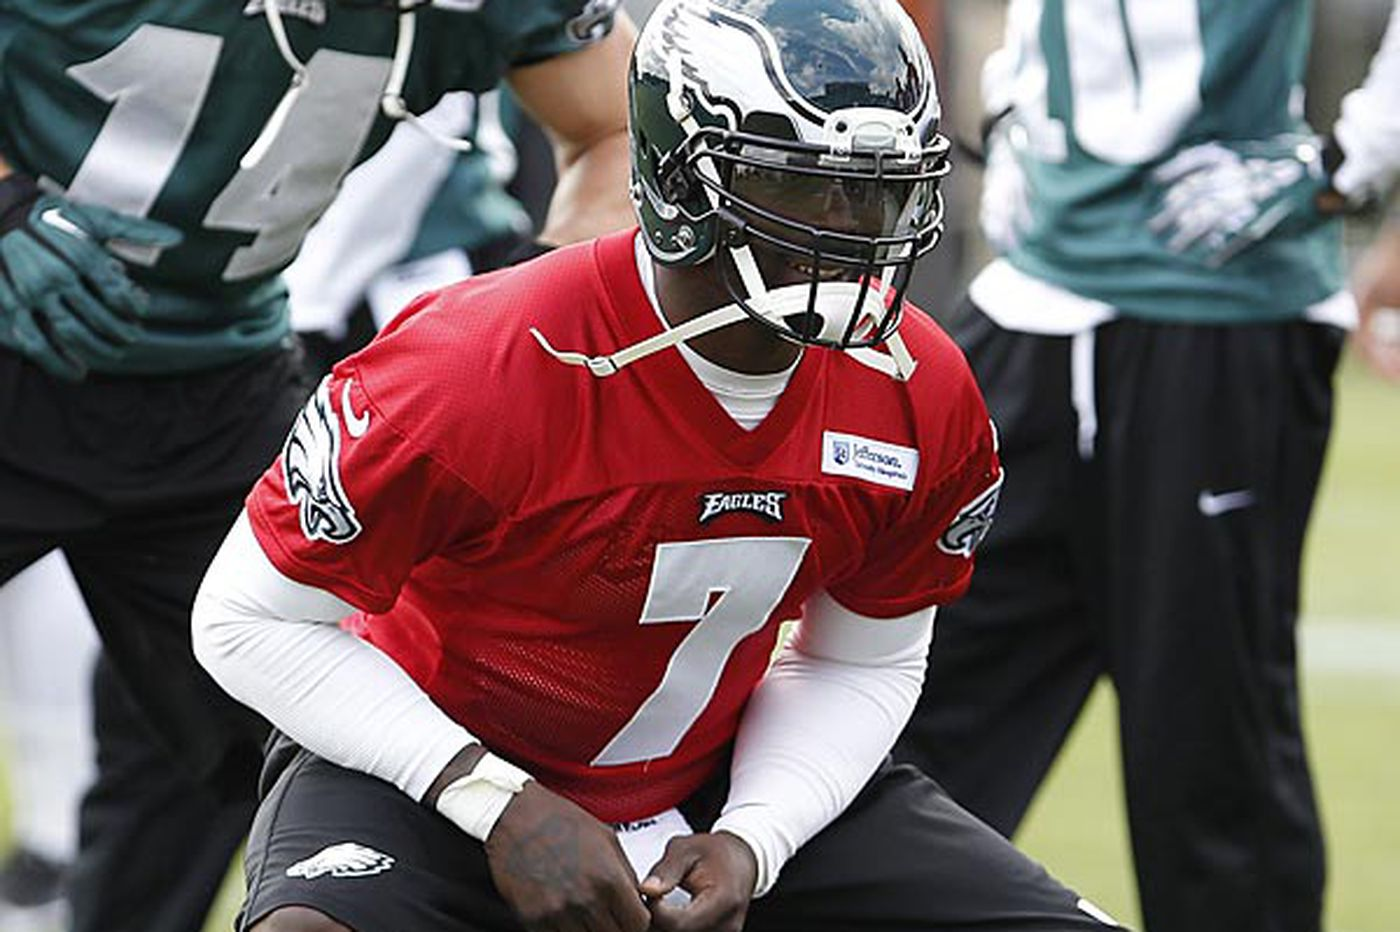 Jaworski optimistic about Vick